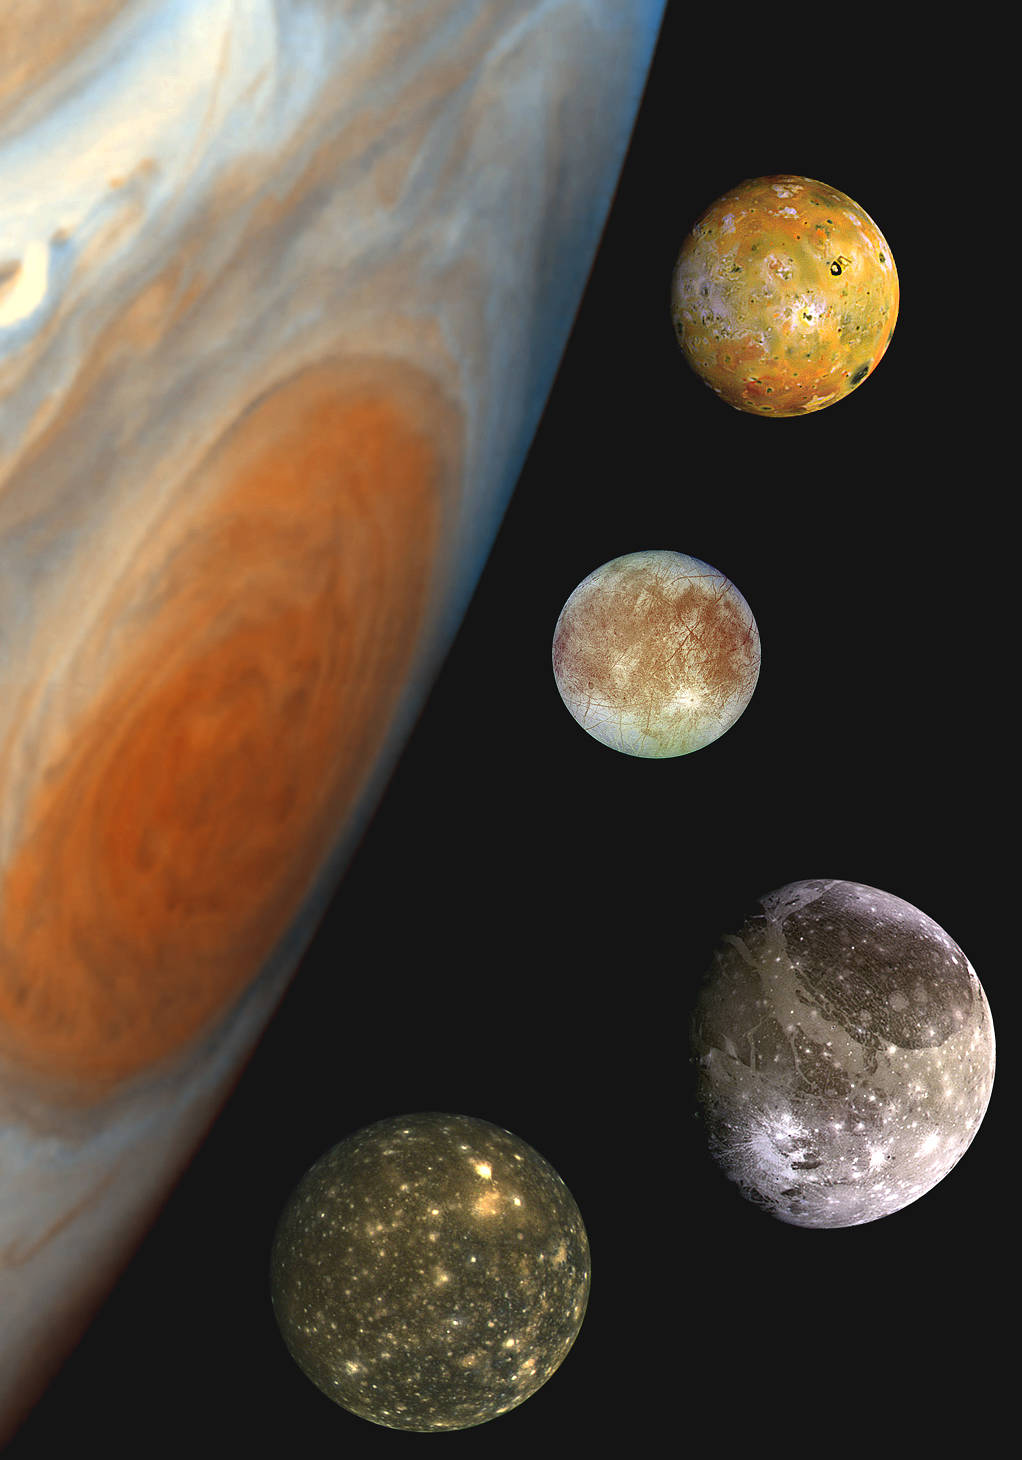 Jupiter and its largest moons.